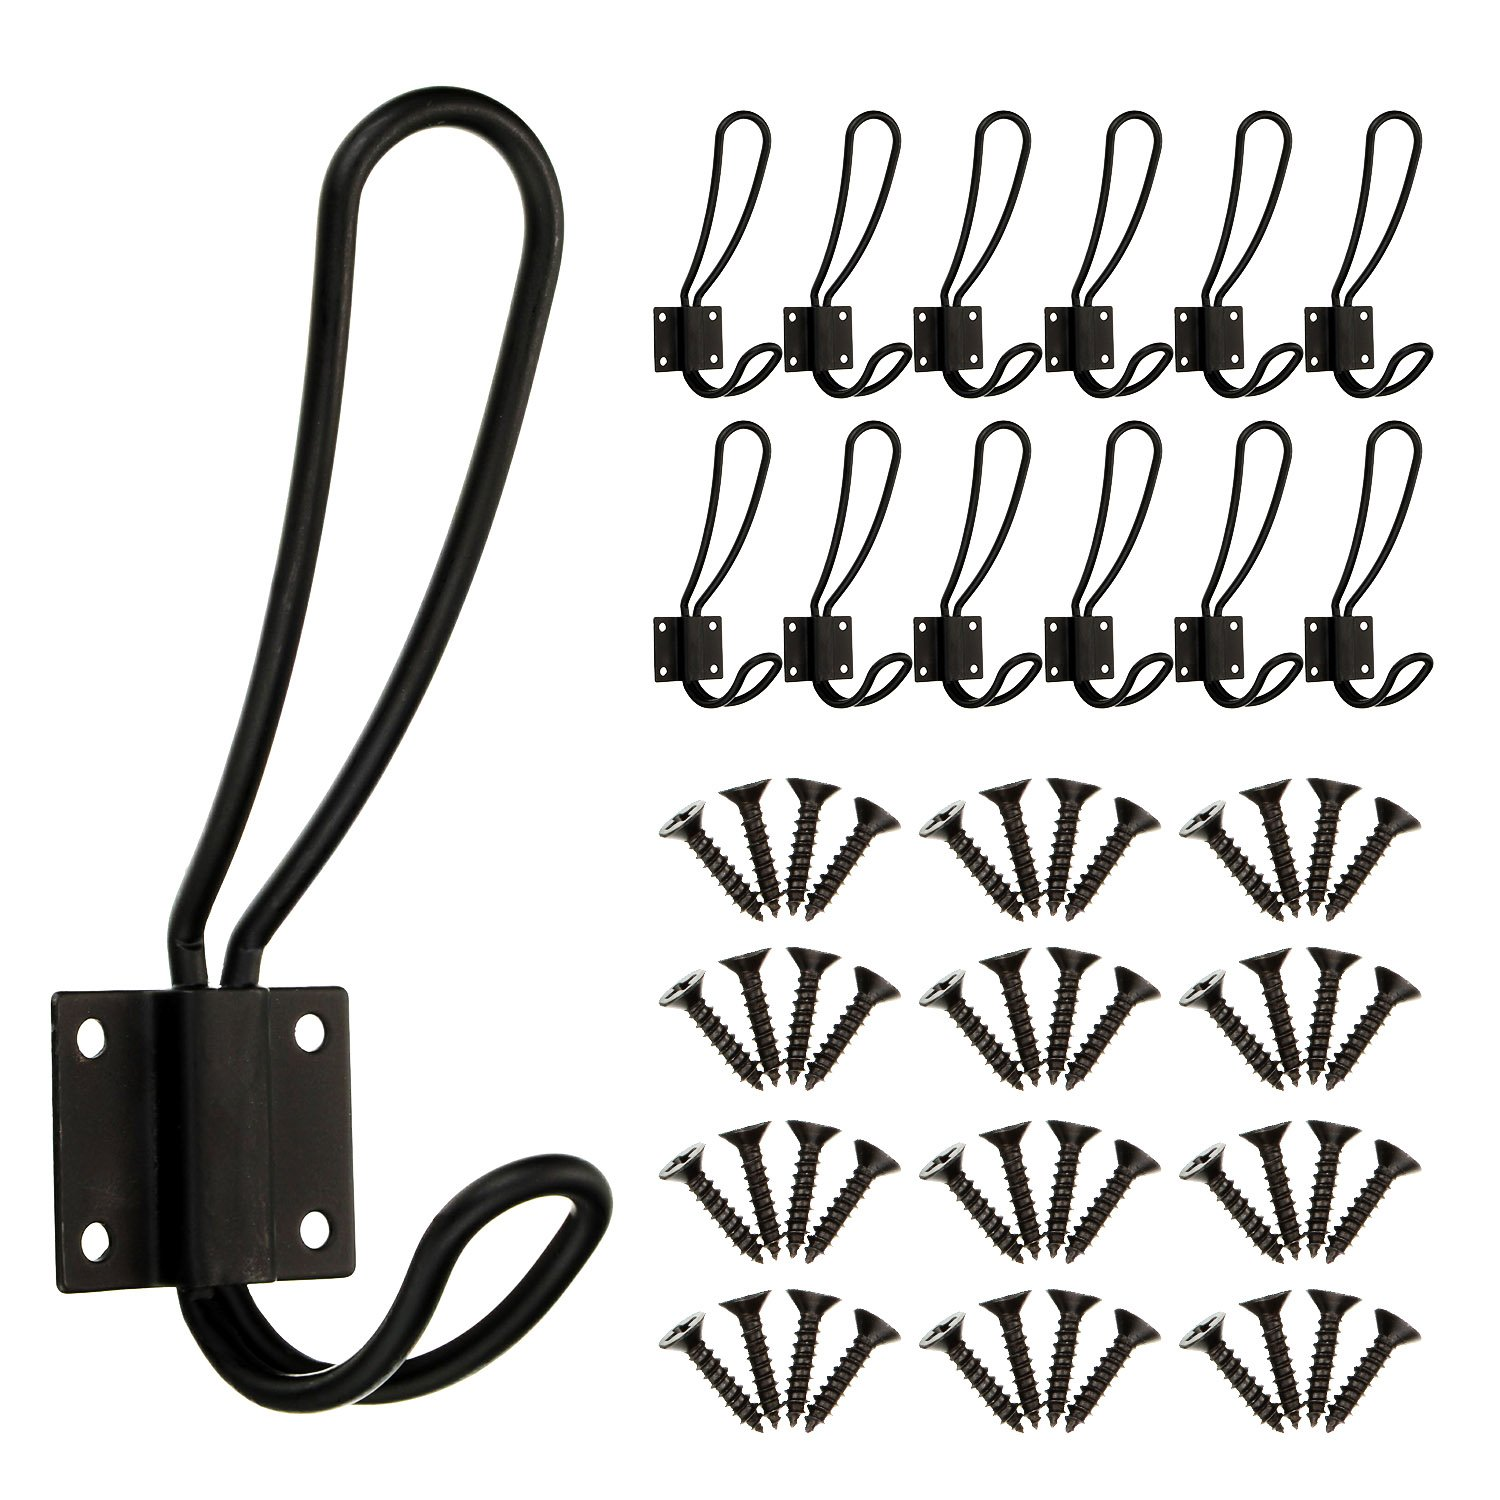 12 Pieces Black Big Wall Mounted Rustic Hook Robe Hooks Double Coat Hangers and 48 Pieces Screws BBTO